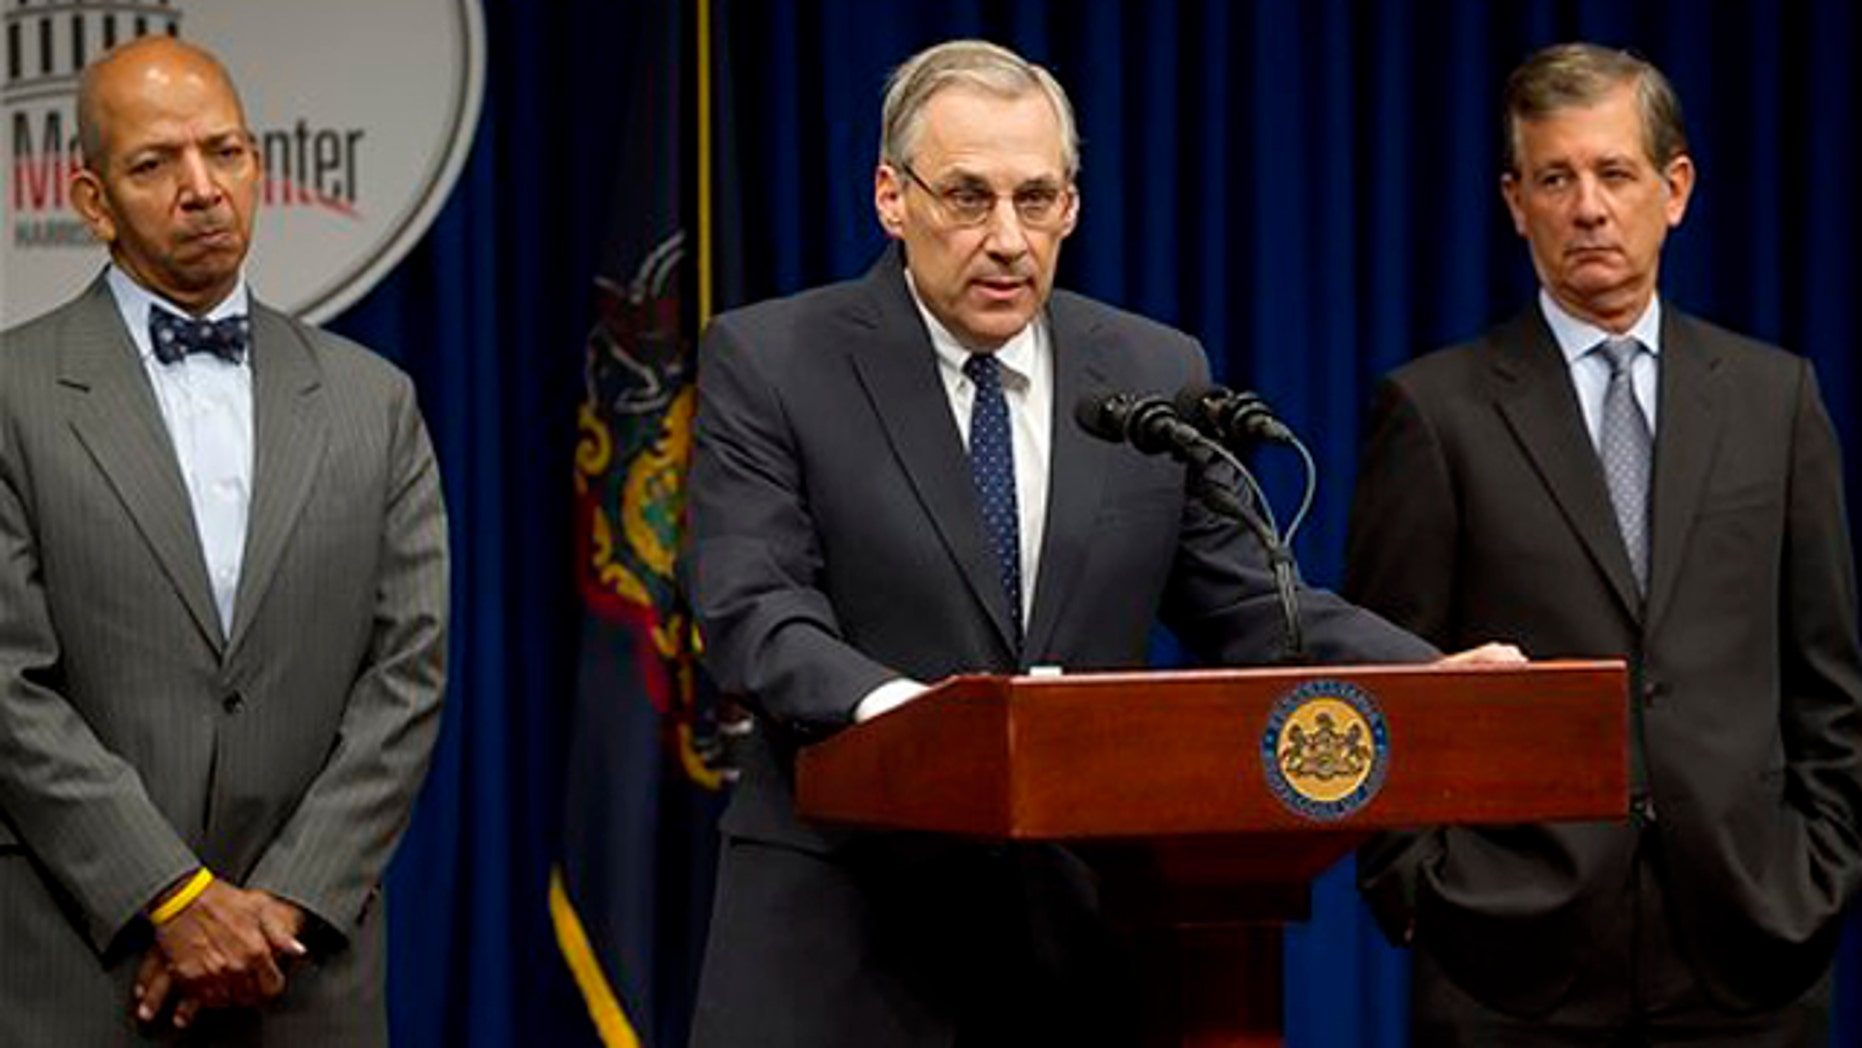 November 18, 2011: David Unkovic answers a question during a news conference.